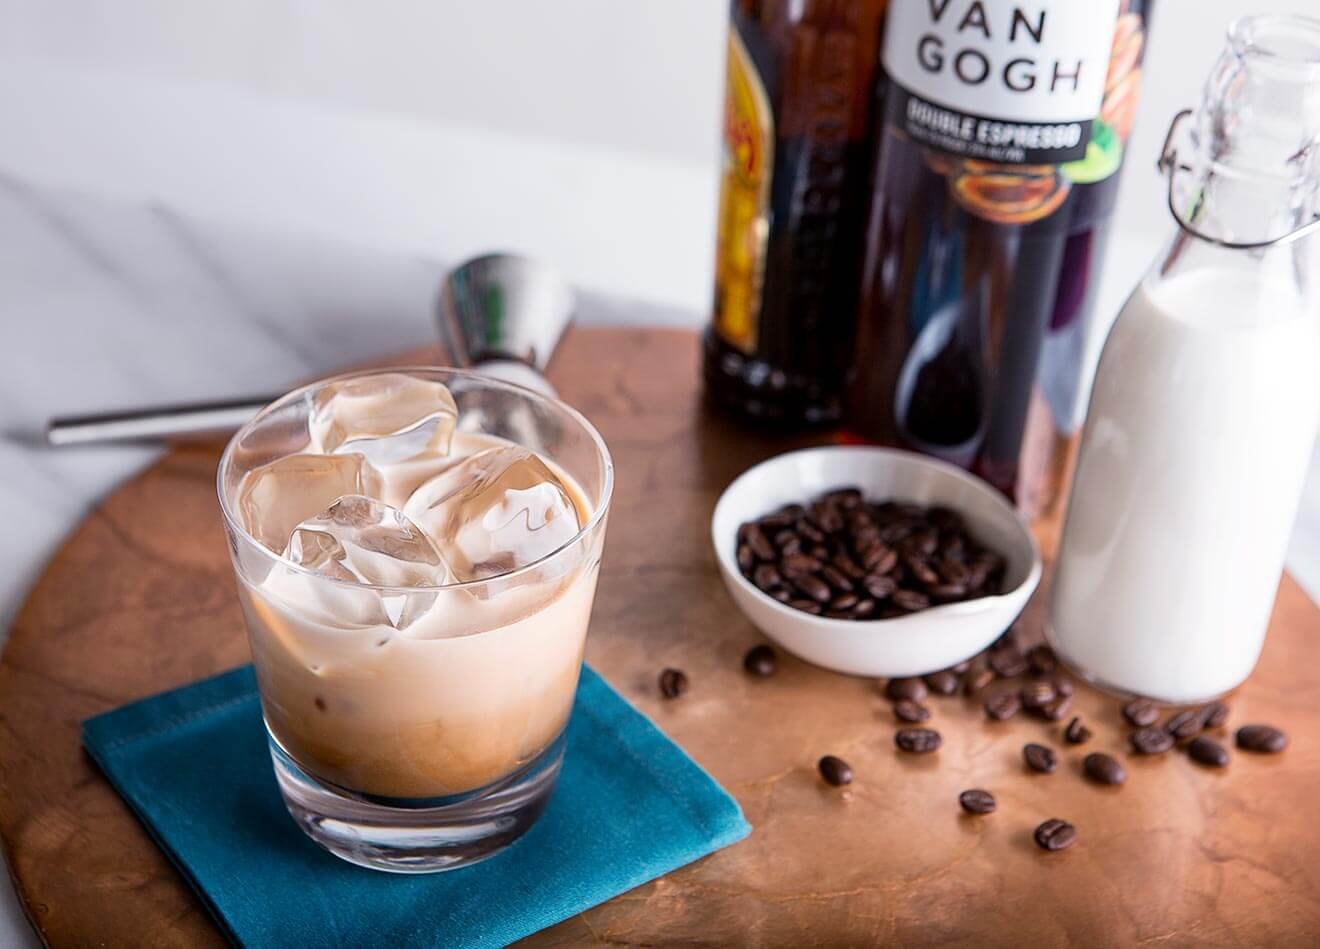 Van Gogh Double Dutch Russian, cocktail with bottle and coffee beans